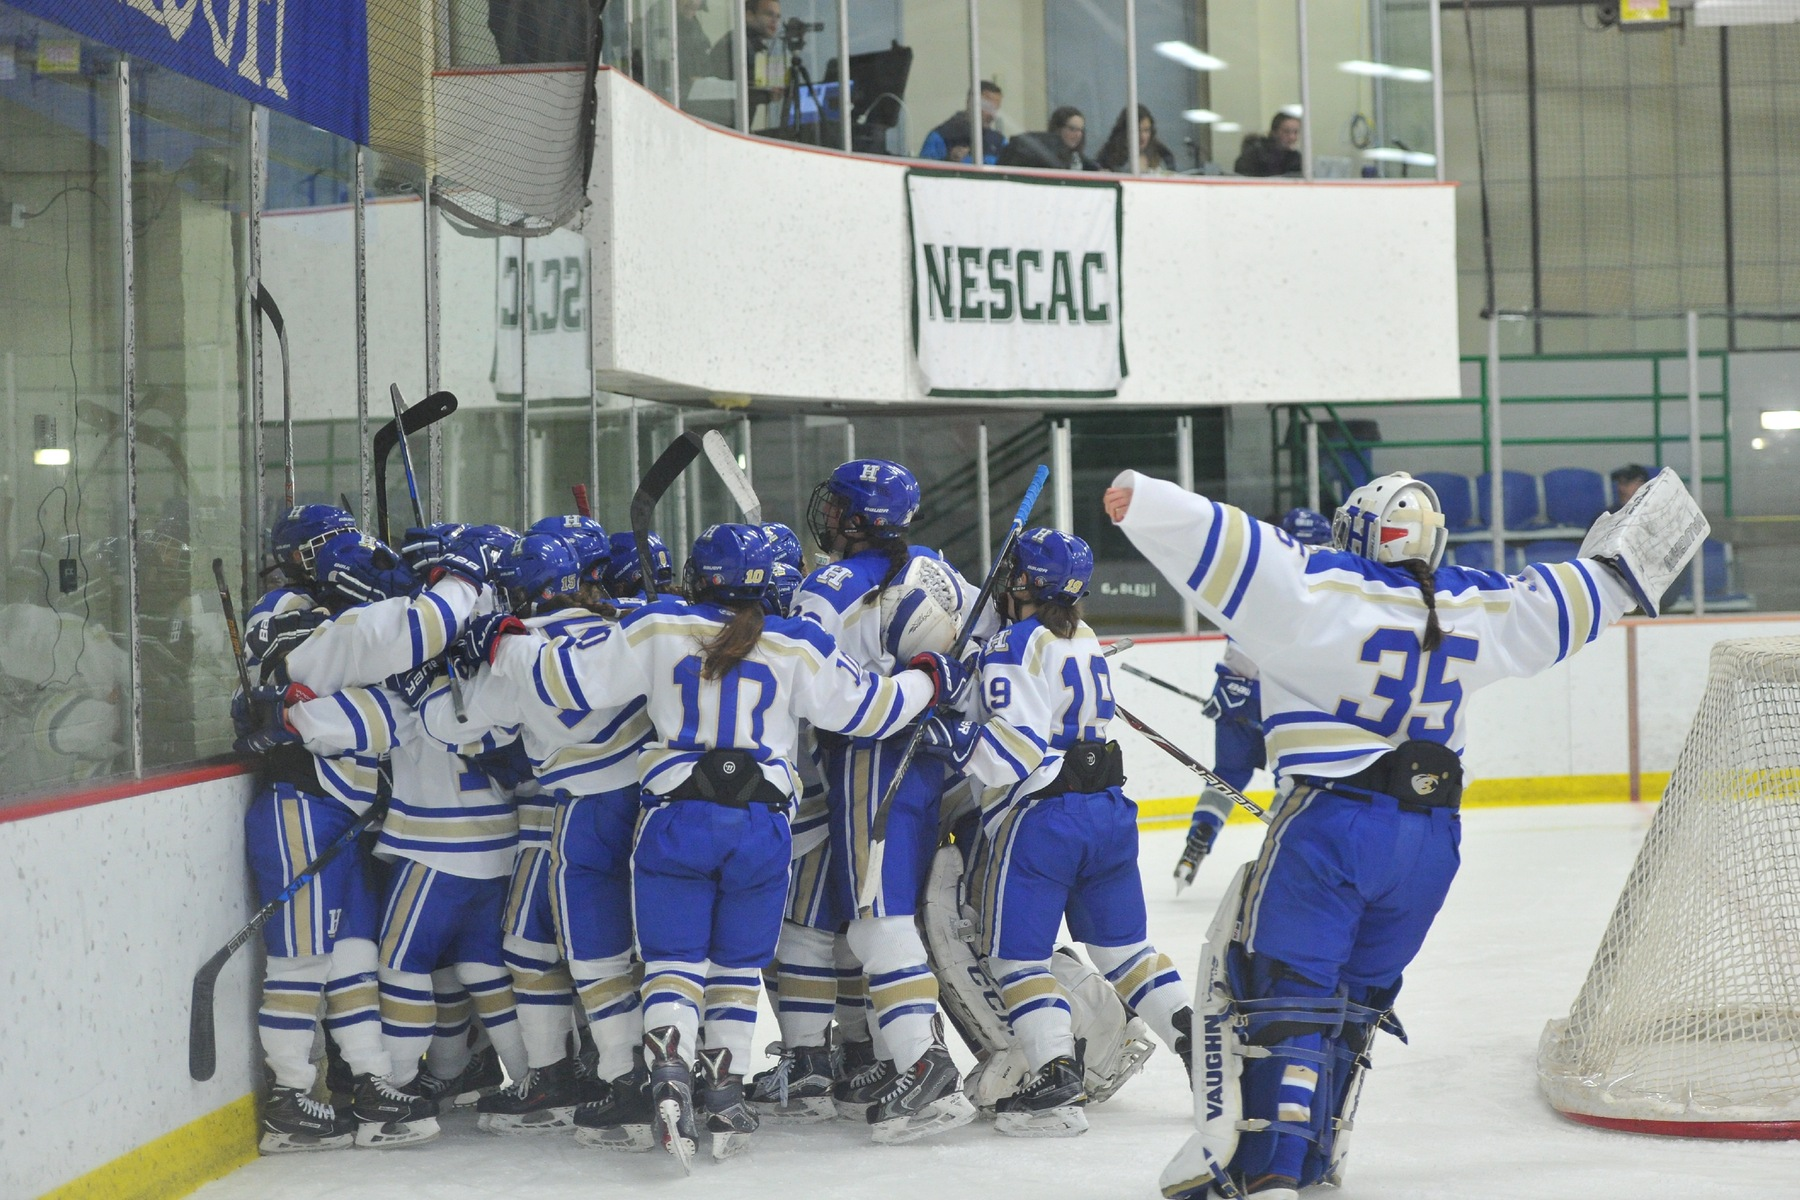 The Continentals celebrate their overtime win against Colby on Friday night (Josh McKee photo).